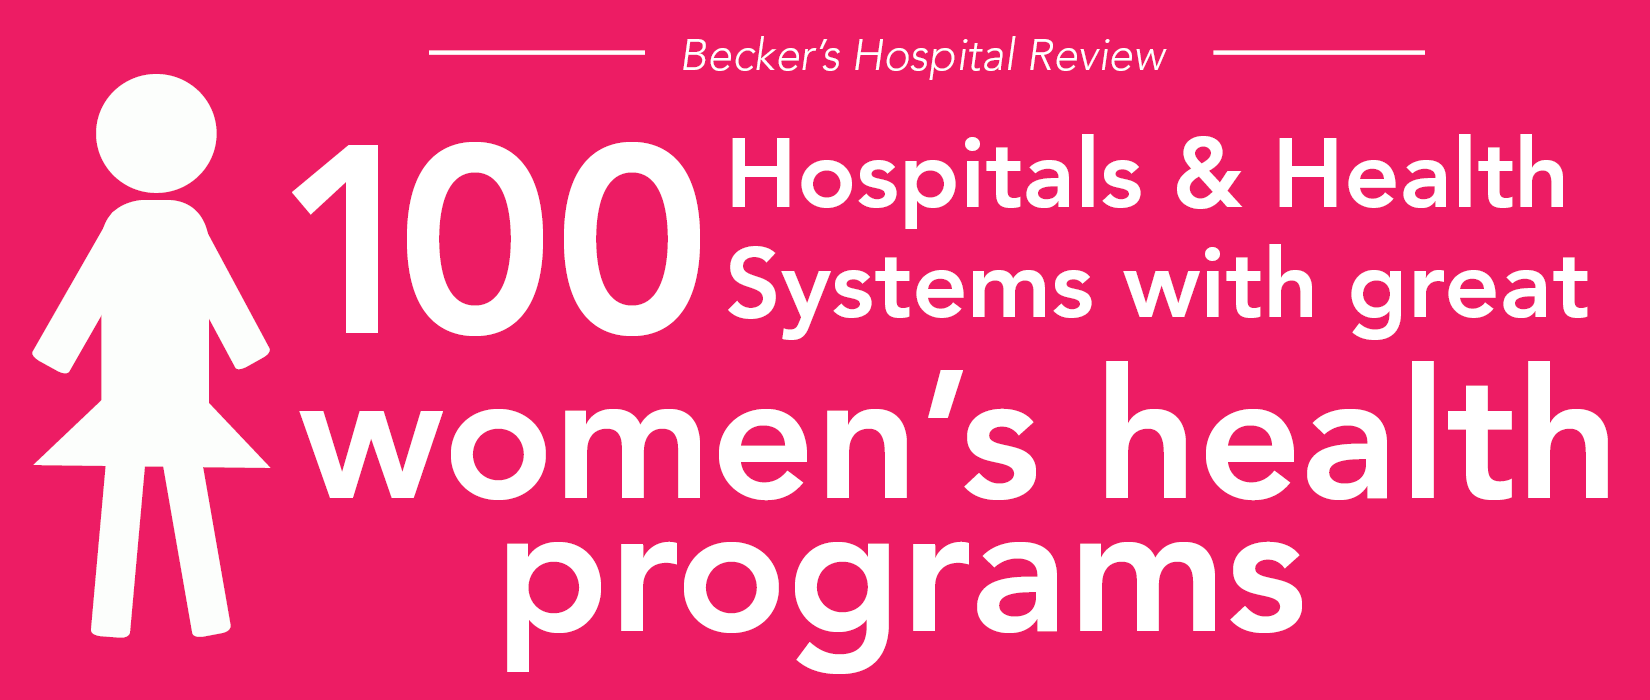 100 hospitals and health systems with great women's health